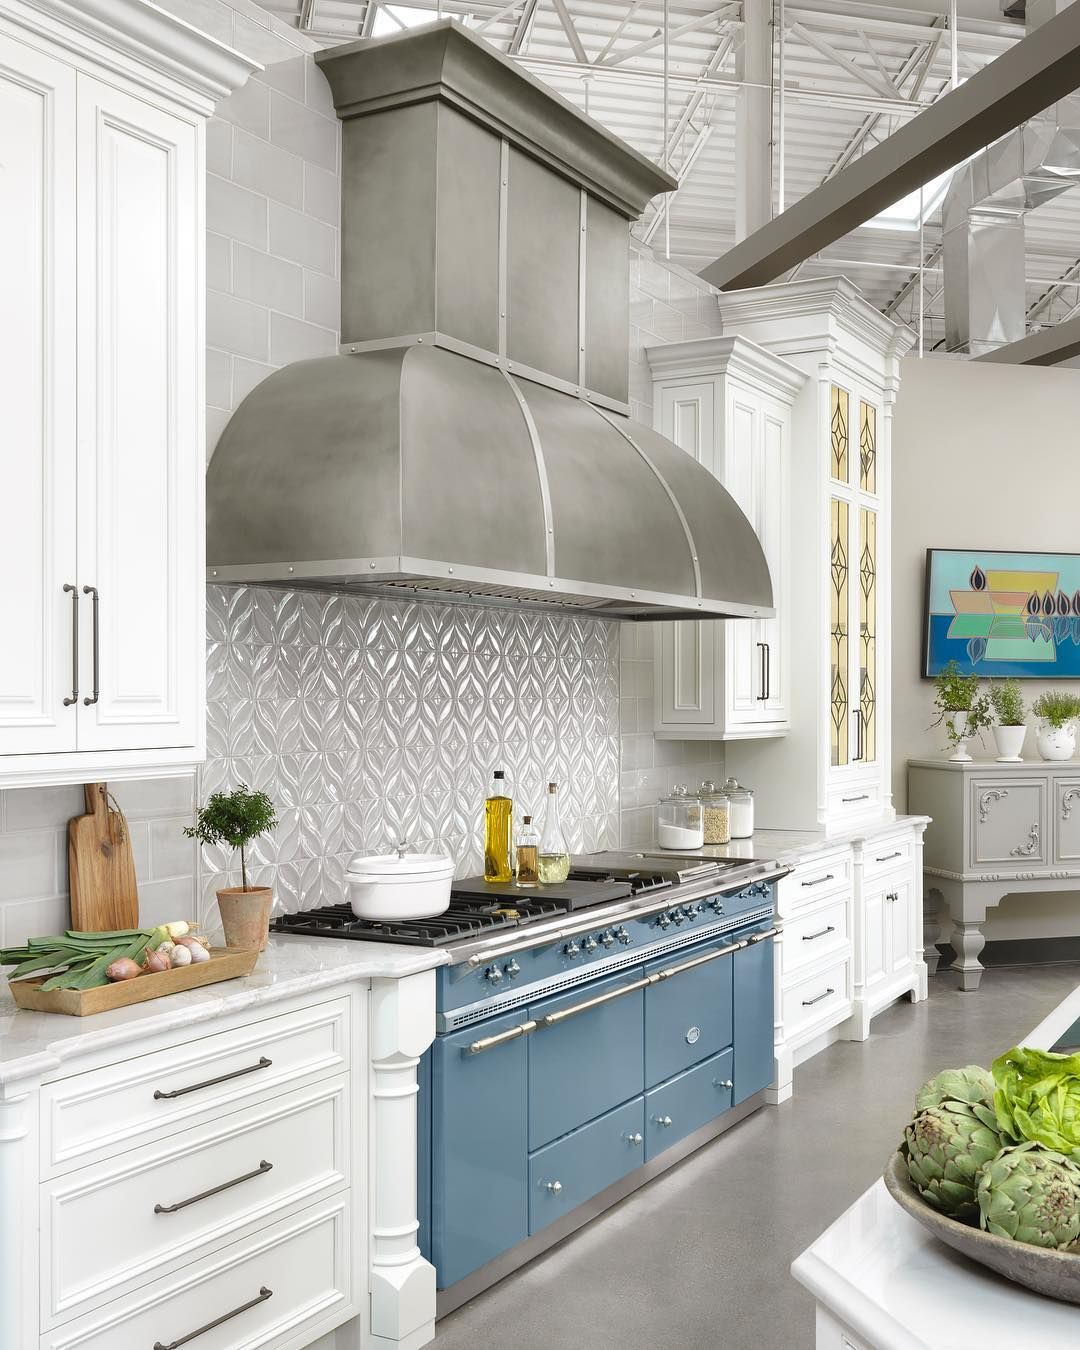 French Ranges La Cornue Vs Lacanche What To Know Before Investing In A French Oven Kitchen Design Best Kitchen Designs Custom Kitchen Cabinets